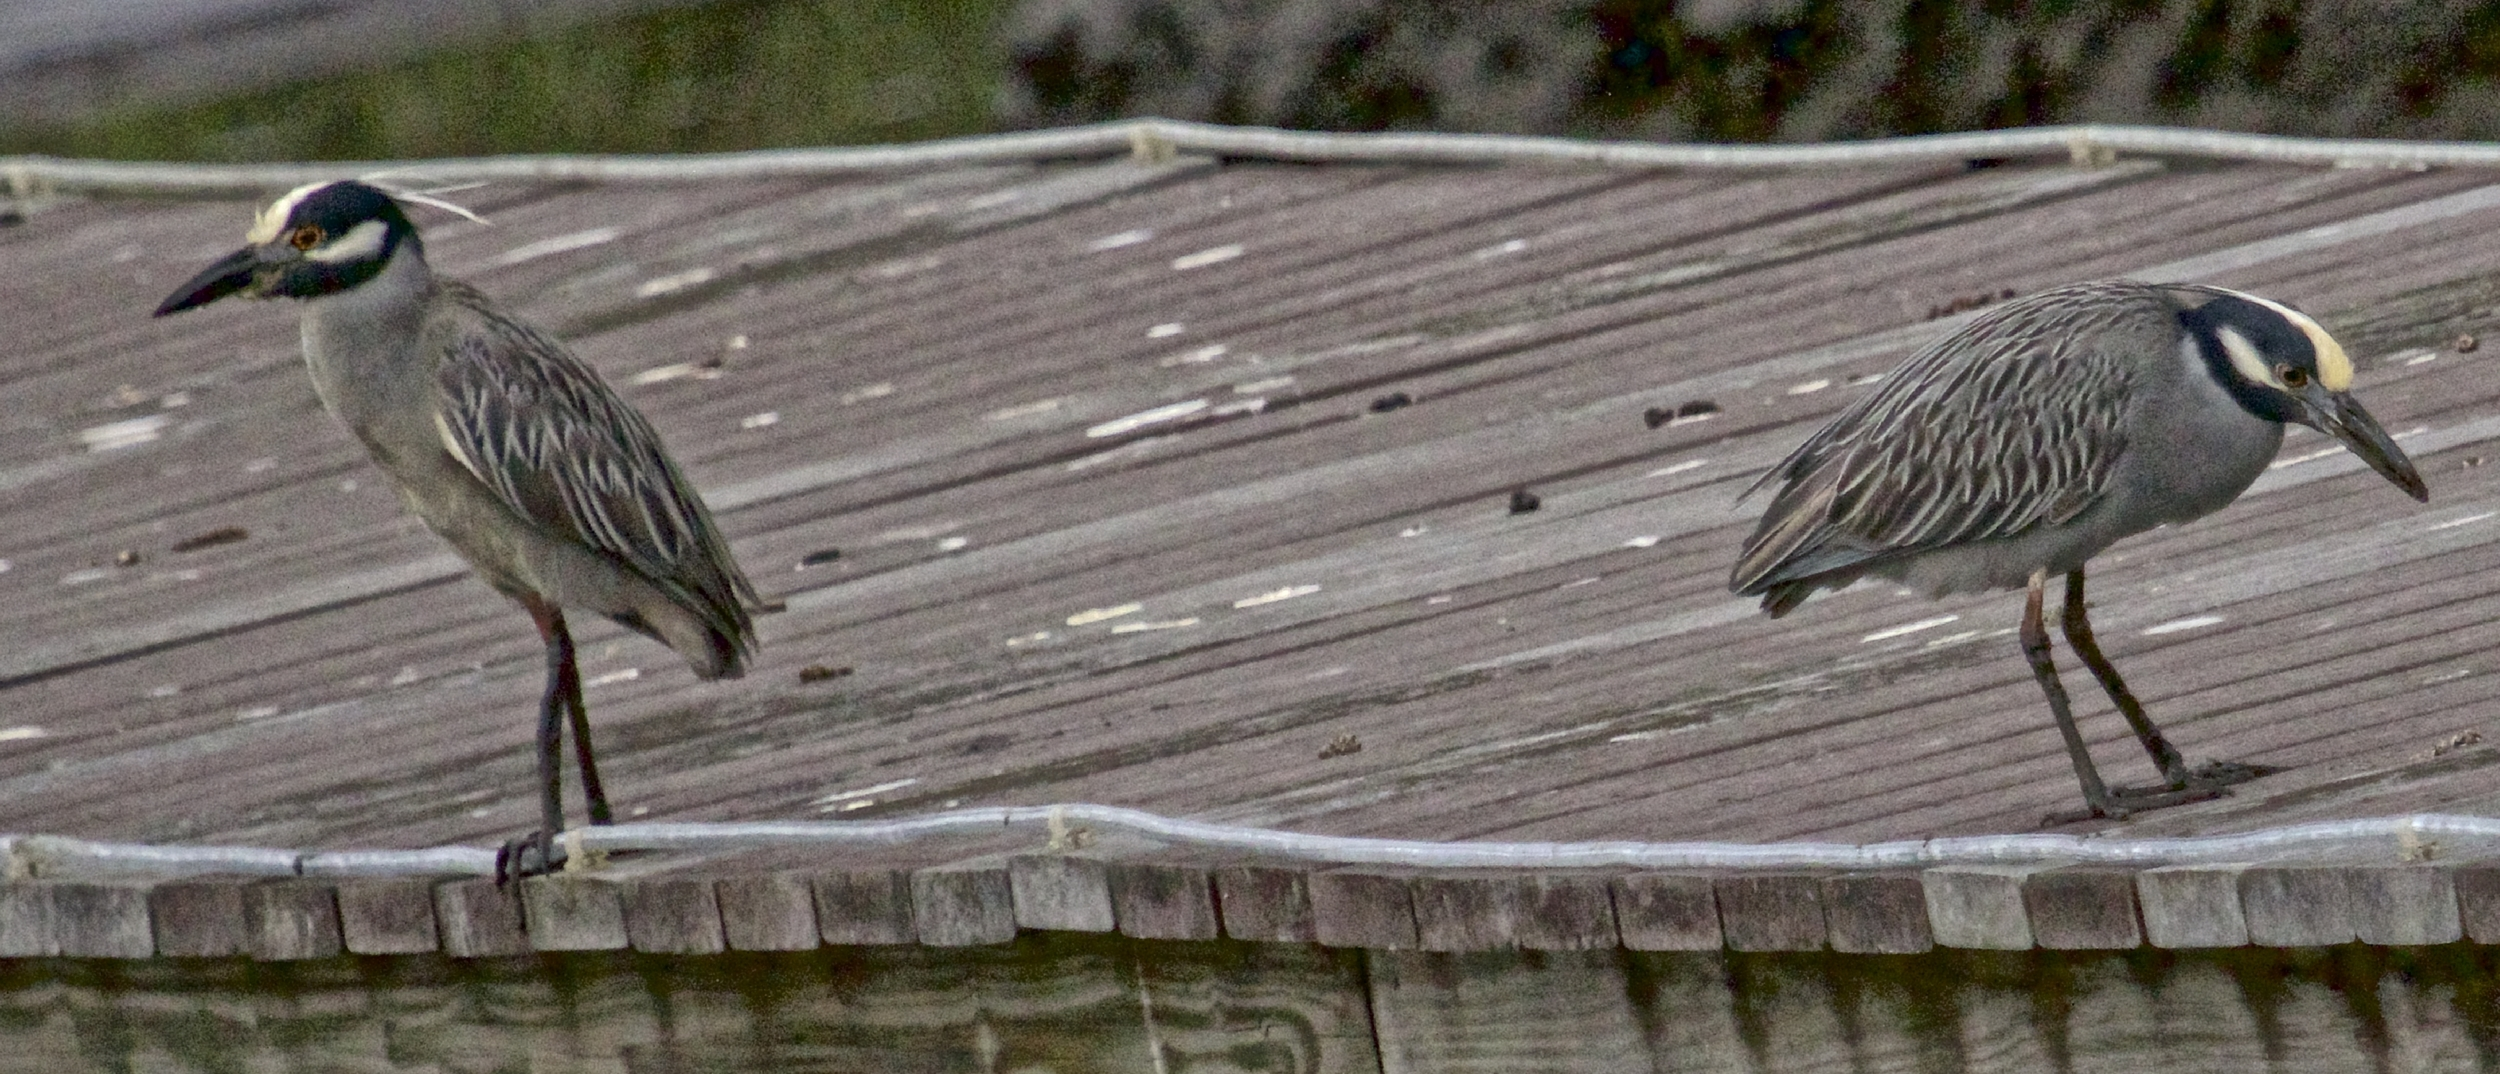 But the surest sign of spring on the Broward...George, the Yellow-crowned Night Heron and his mate Georgia are back!